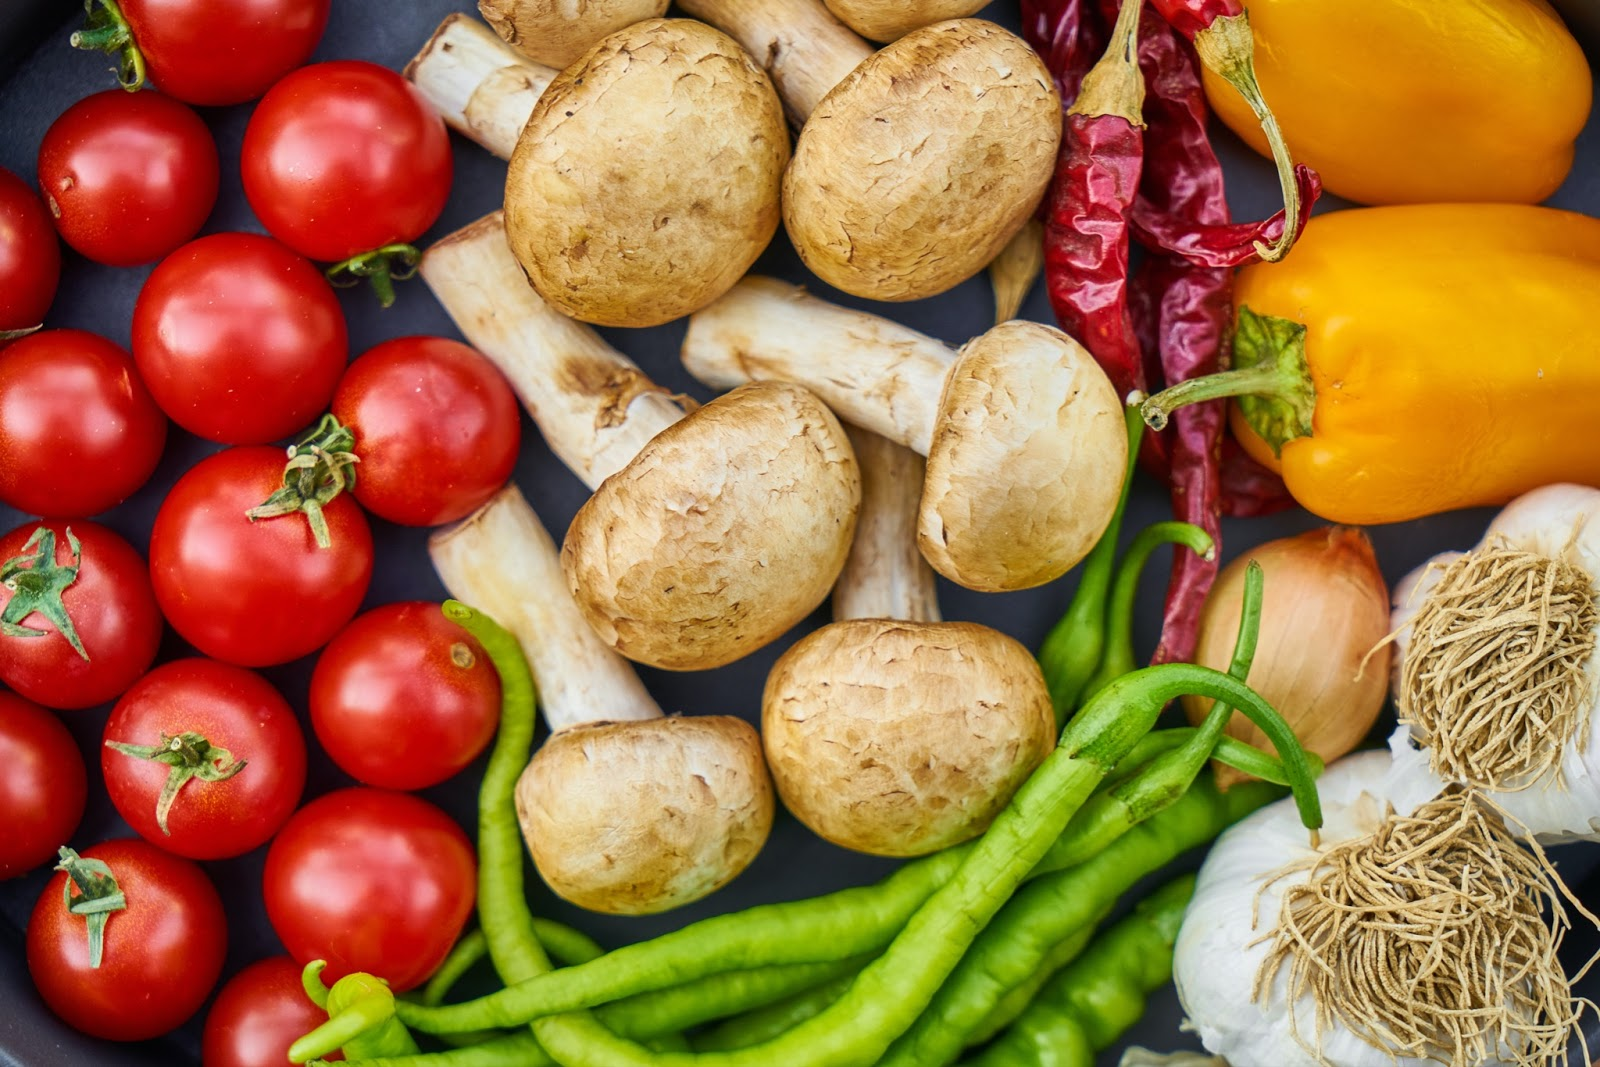 tomatoes, mushrooms, peas, peppers, chilis, and garlic fill the photo as they are placed on a table.